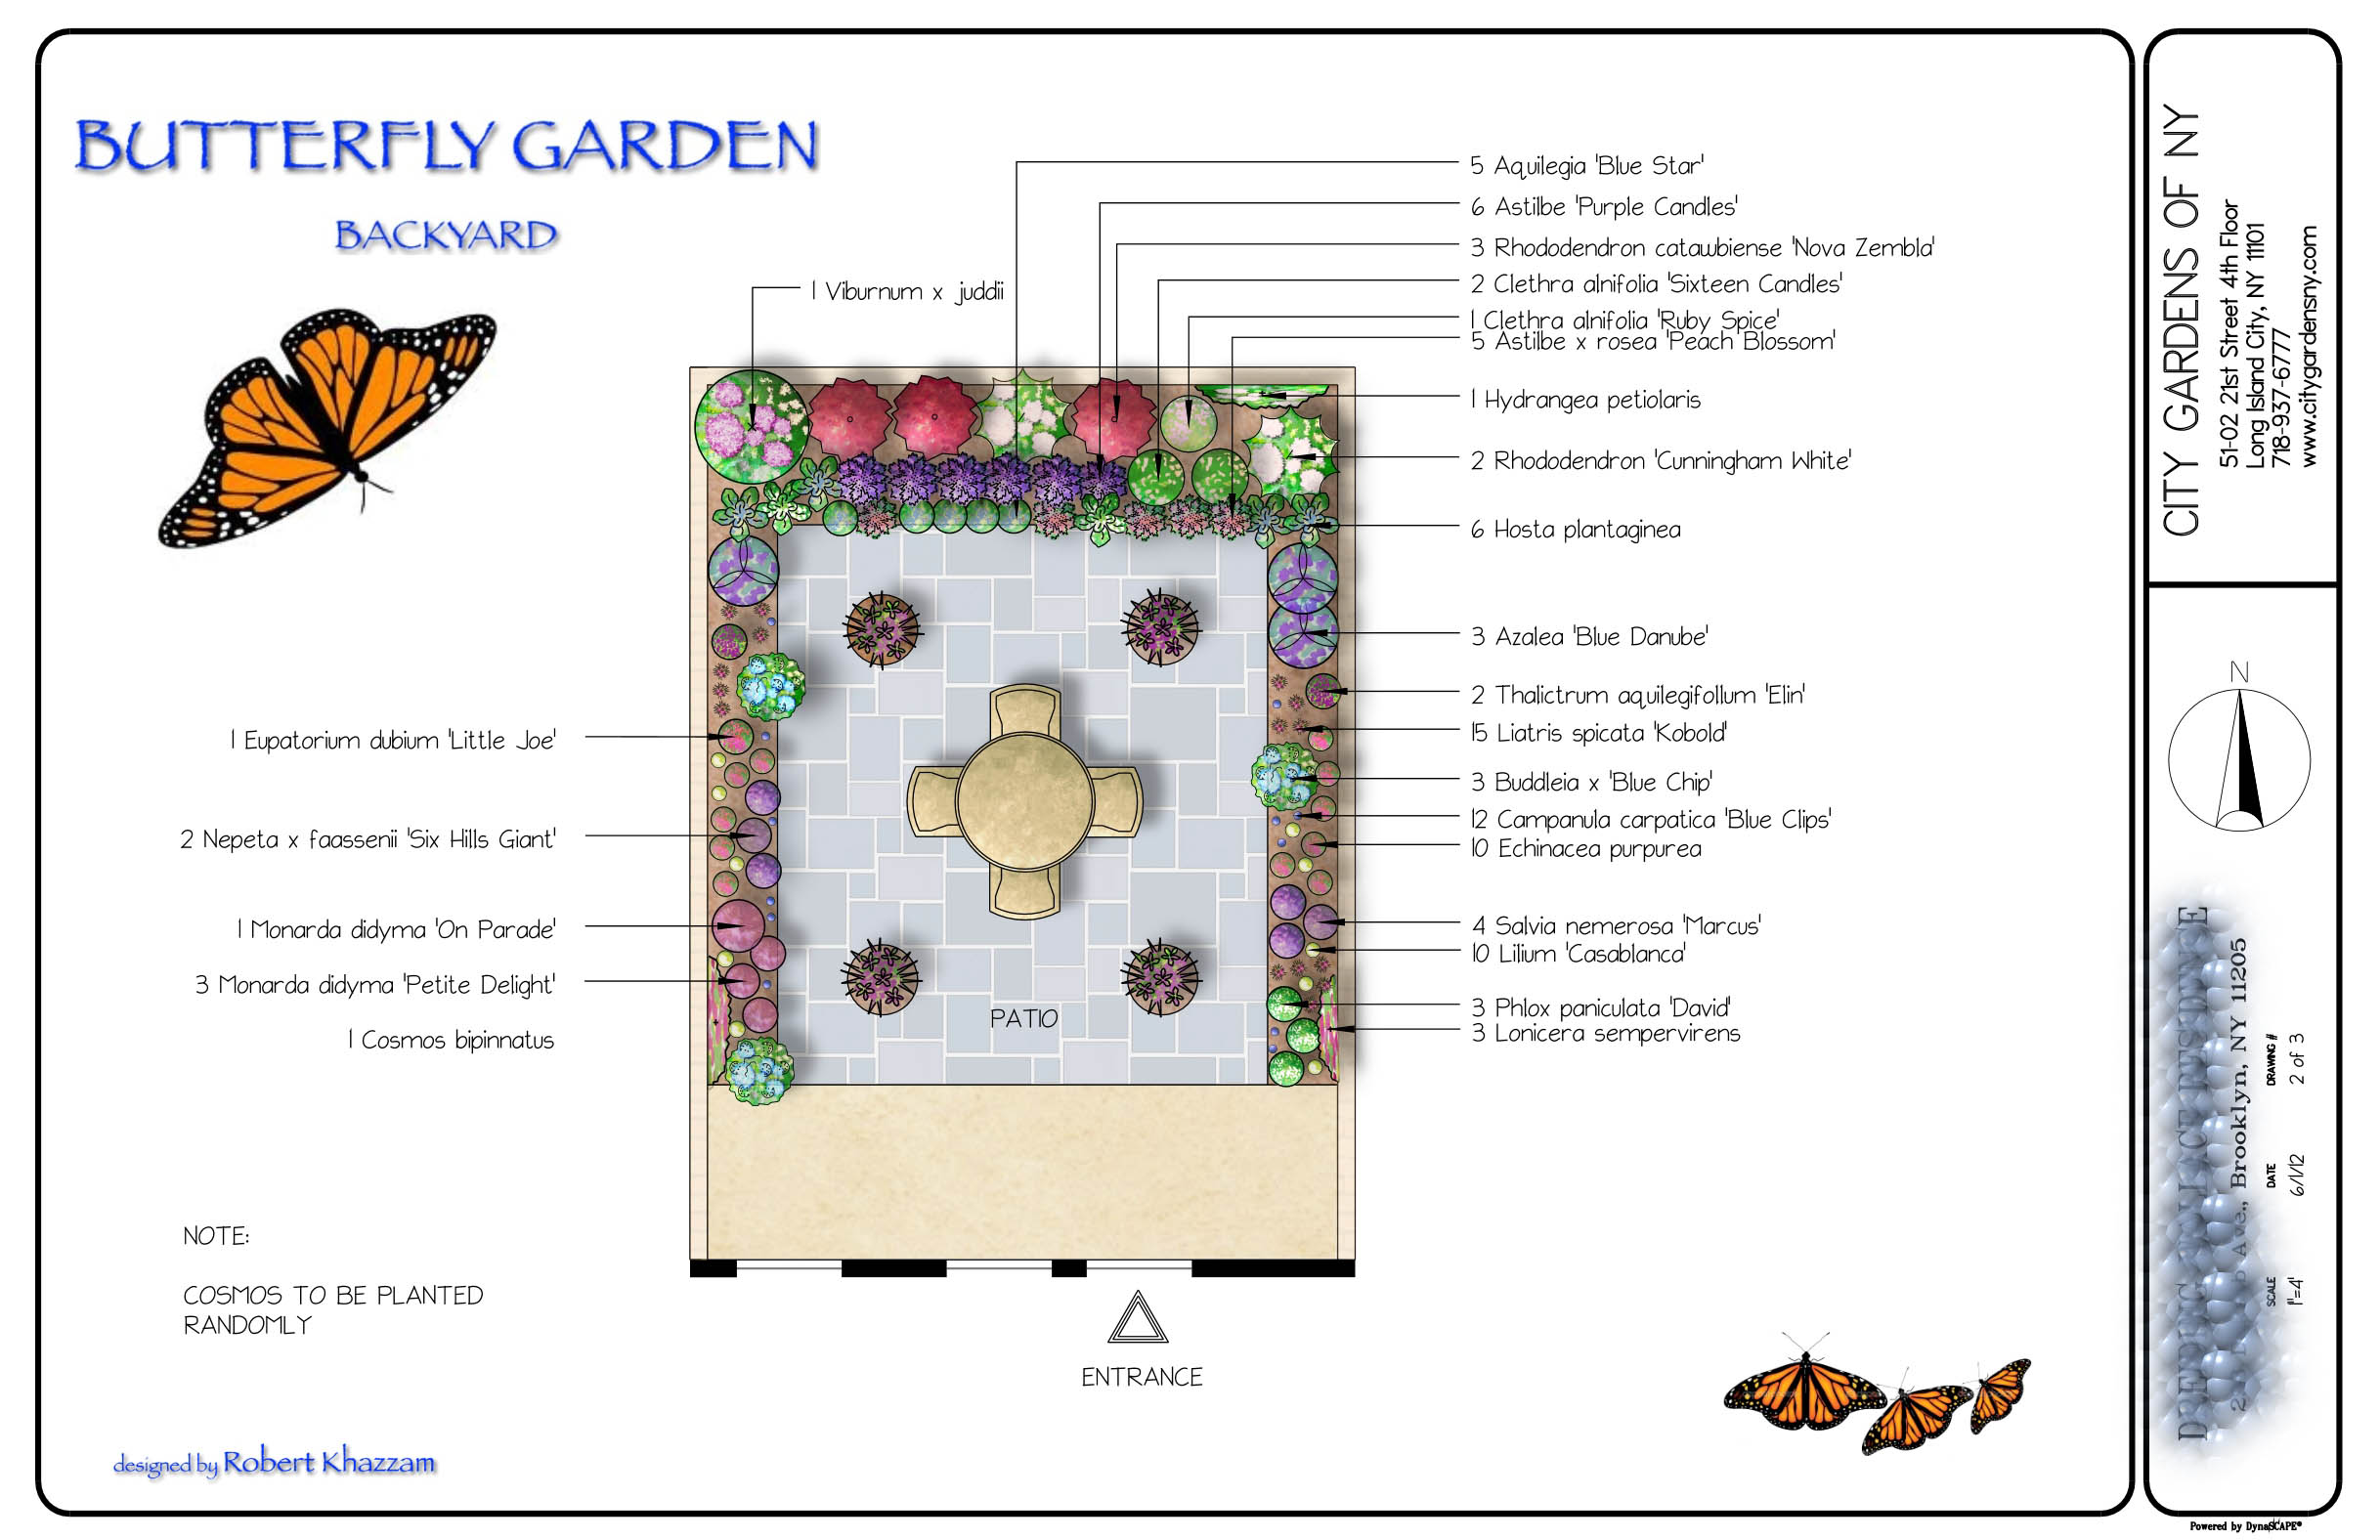 Butterfly garden city gardens of ny for Butterfly garden plans designs